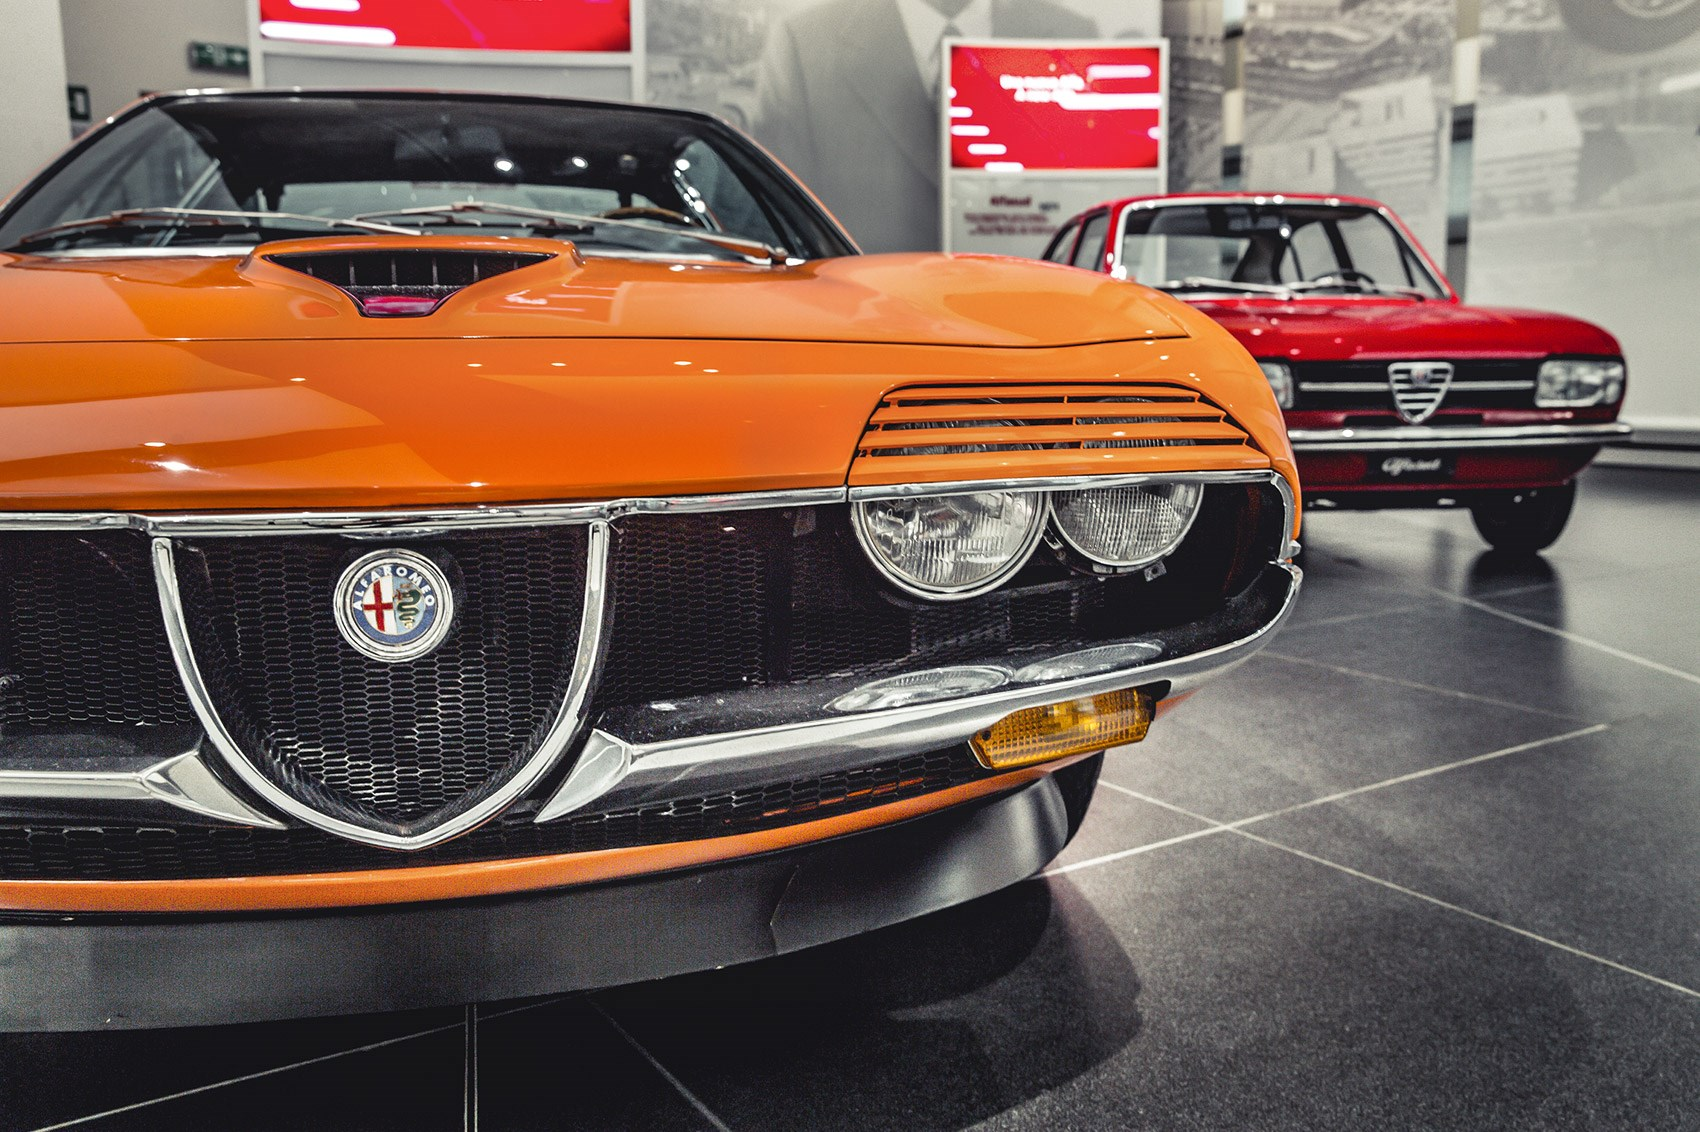 Alfa Disco Volante For Sale >> The cars that built the legend: Inside Museo Storica Alfa Romeo by CAR Magazine